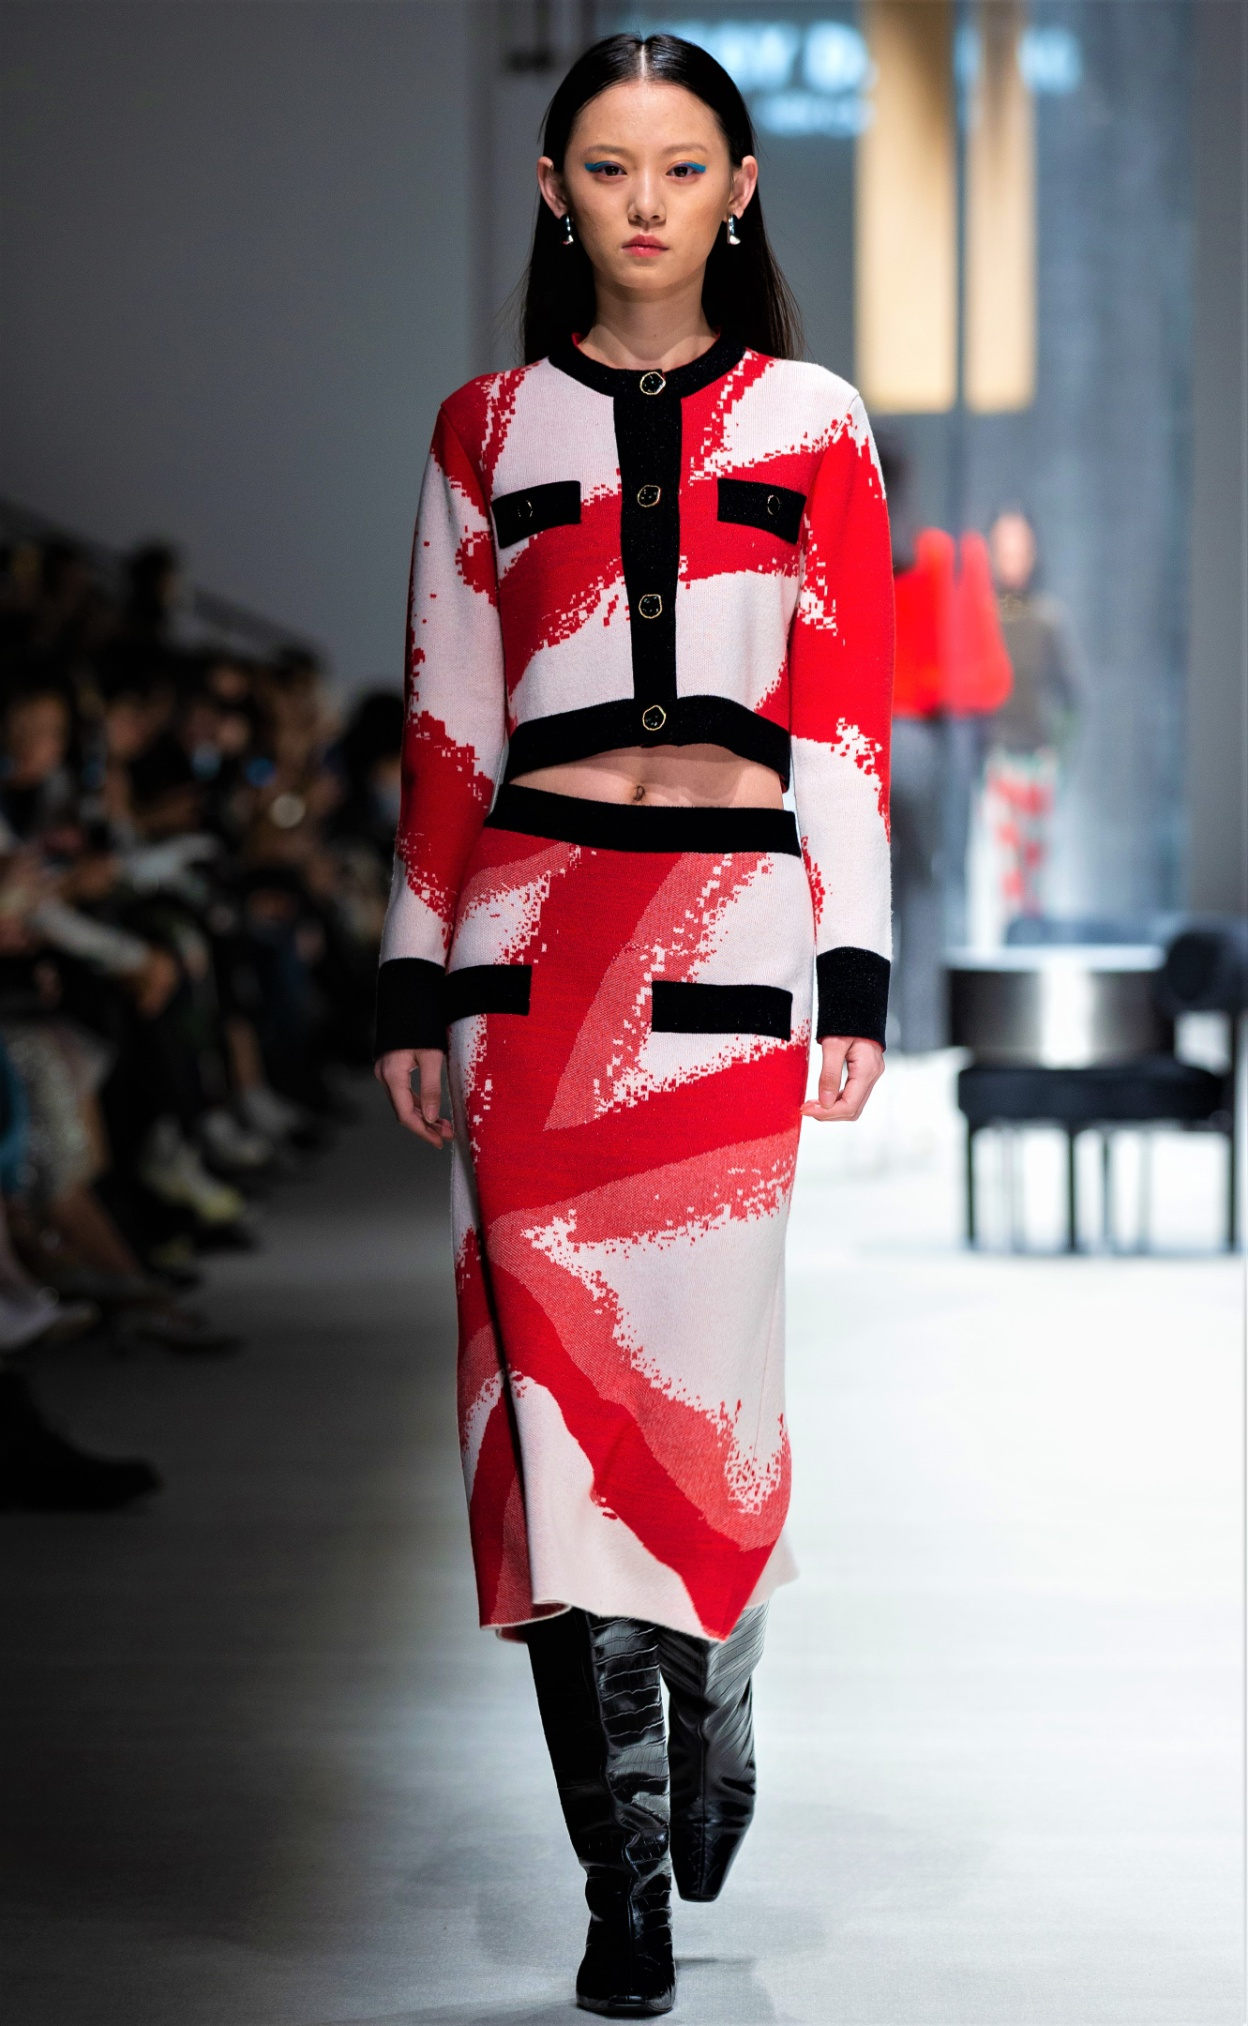 May D. Wong New Cashmere red blk wht cropped.jpg